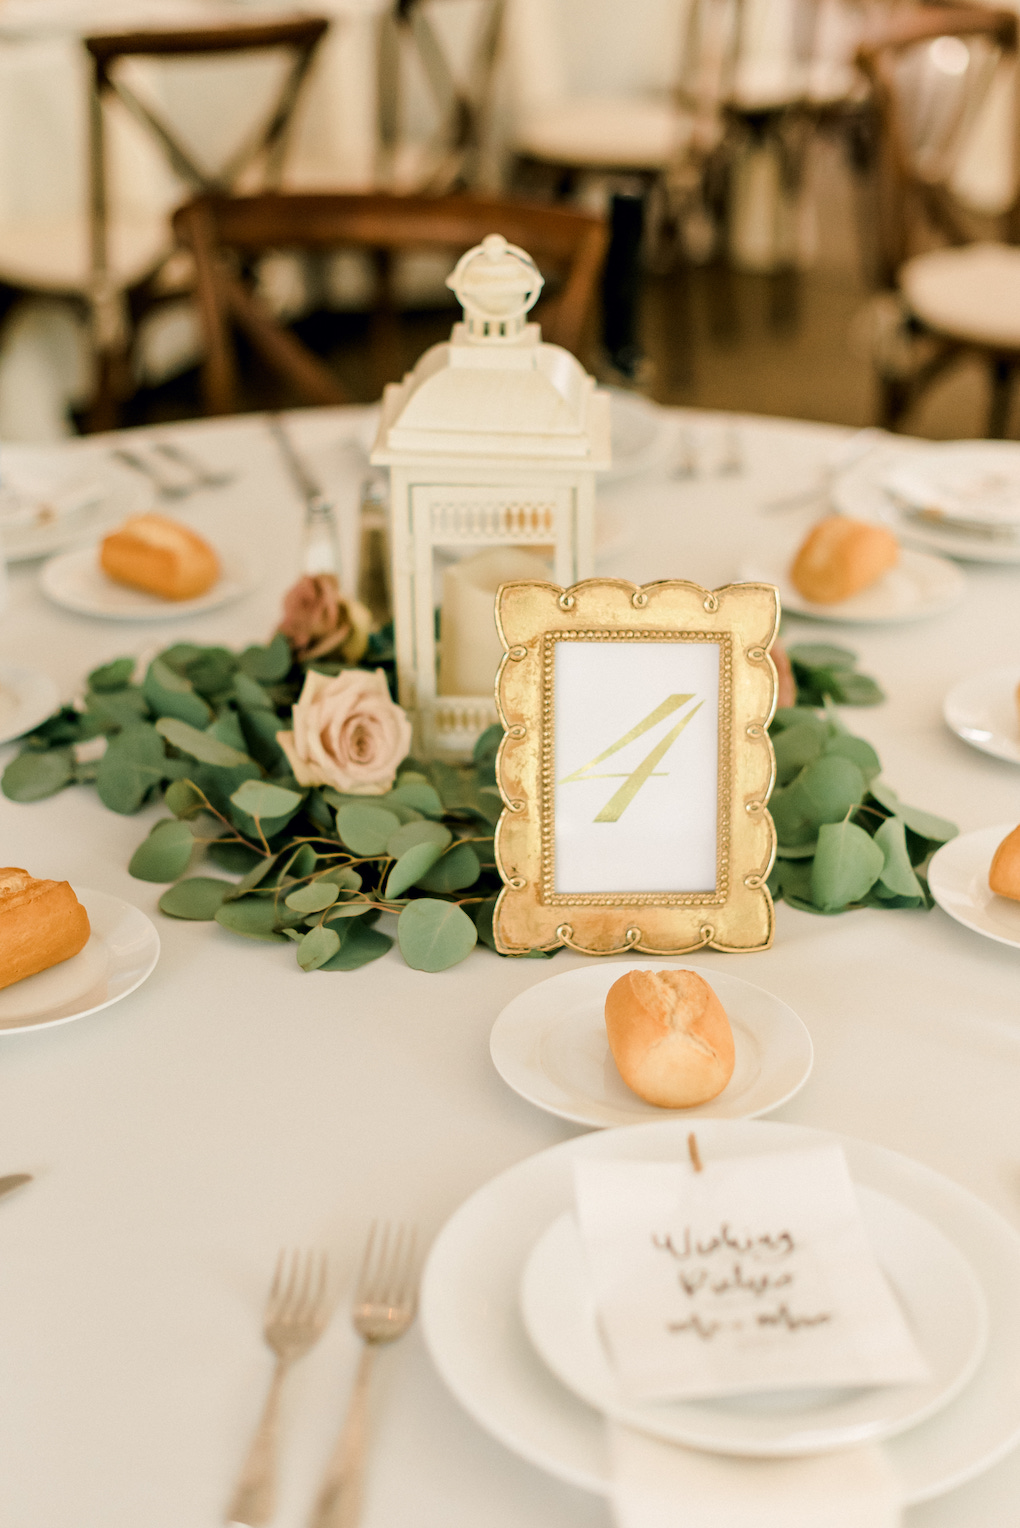 Gold and White Centerpieces with Greenery: Romantic Delicate Summer Wedding in Pittsburgh planned by Exhale Events. See more at exhale-events.com!